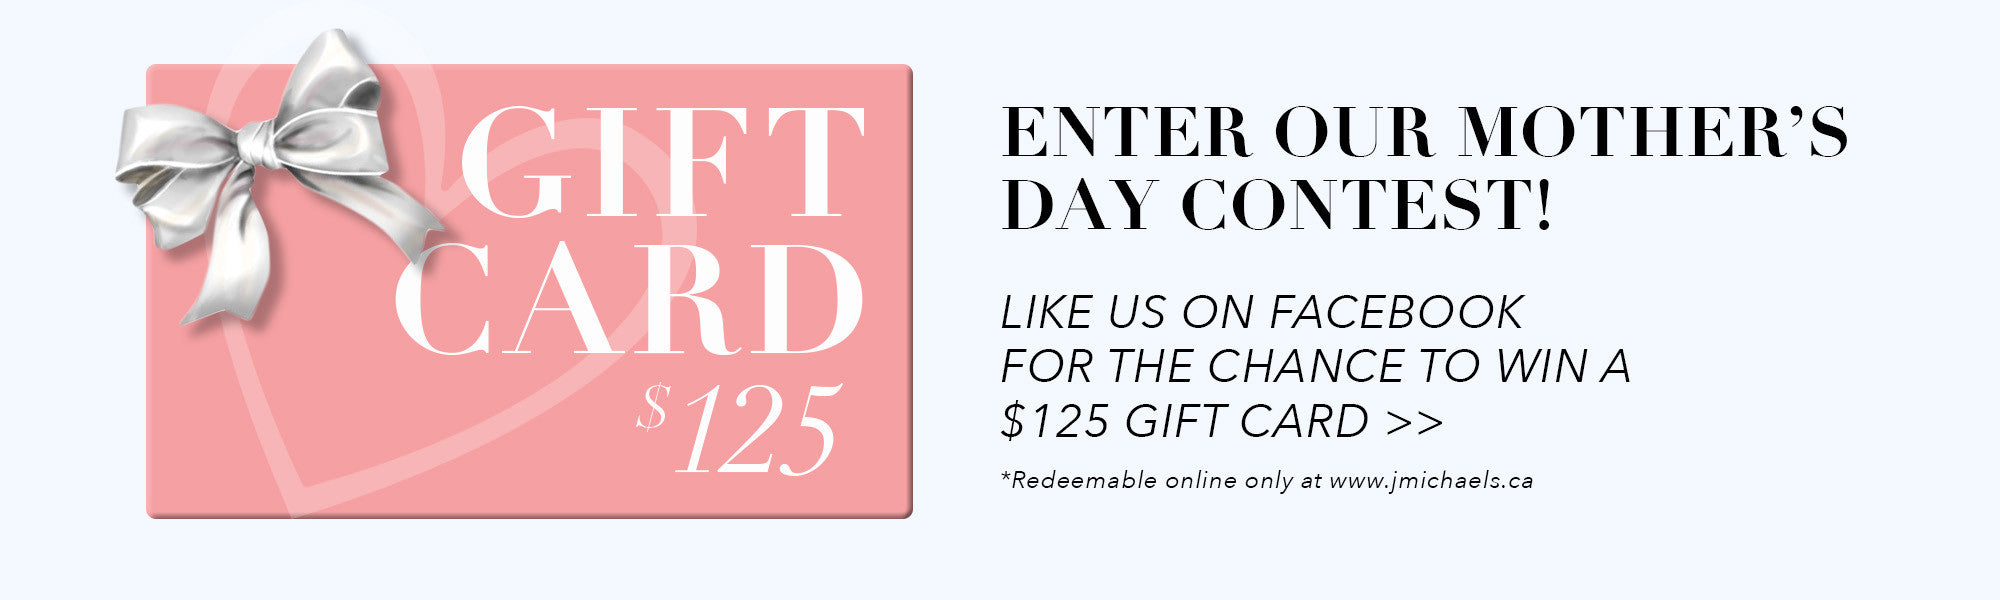 Mother's Day Contest - Enter to WIN $125 Gift Card